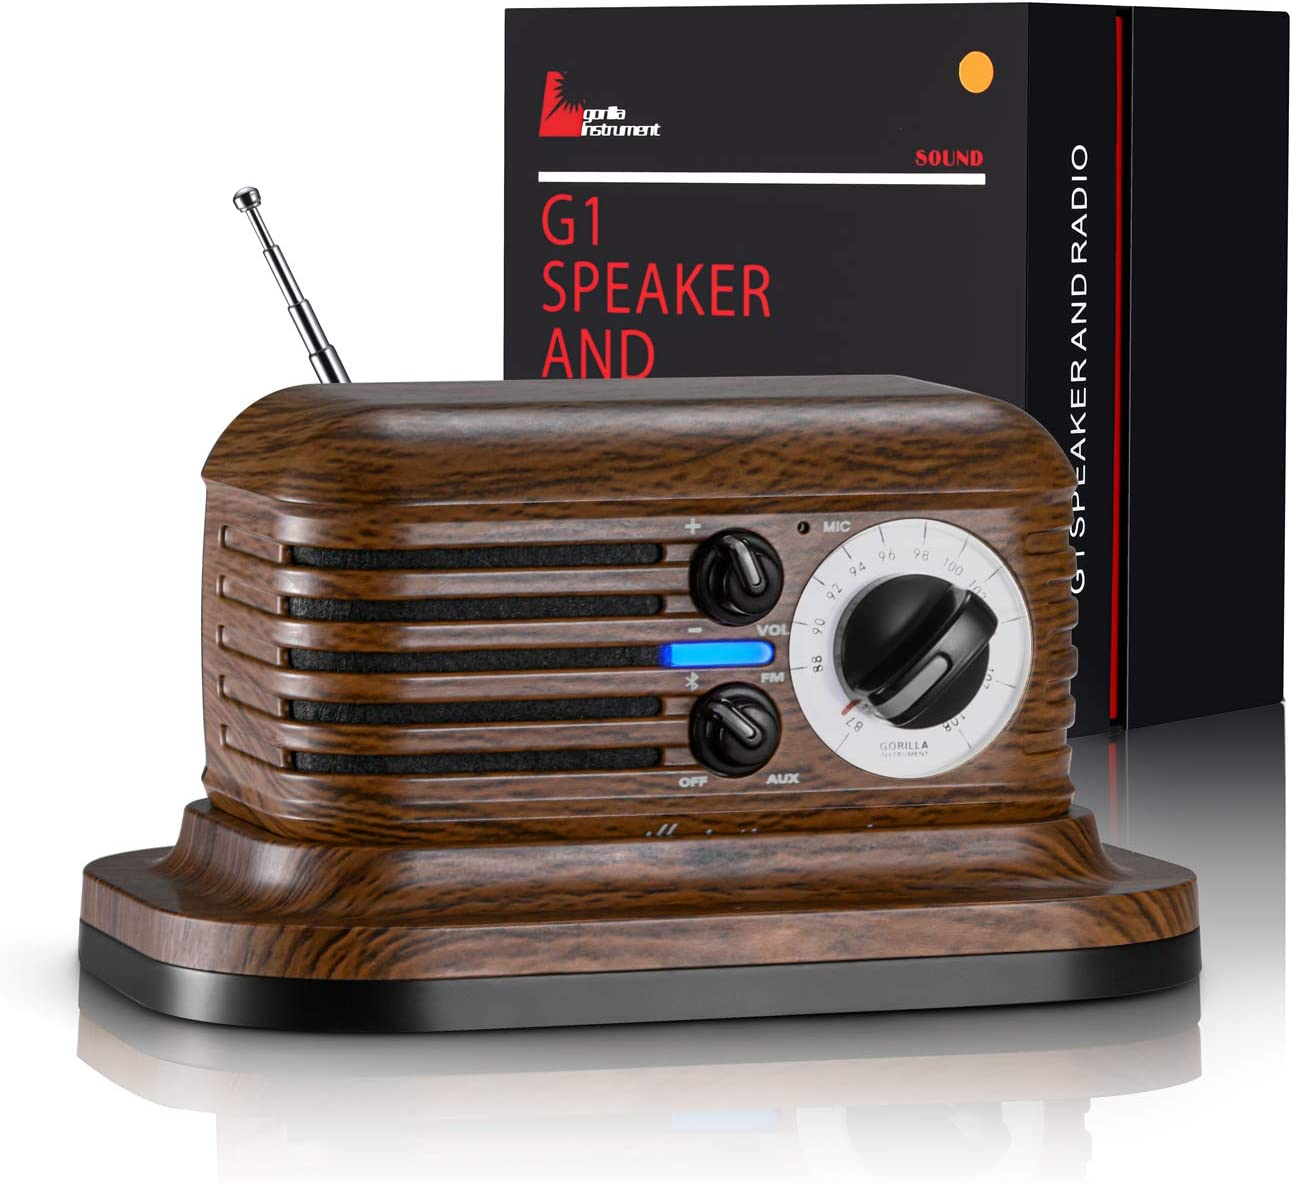 DACOOR Premium Portable Vintage Radio Retro Bluetooth5.0 Speaker Strong Bass Enhancement Louder Perfect Sound Wireless Connection for Home Office Kitchen iPhone Samsung and More (Dark-Brown)